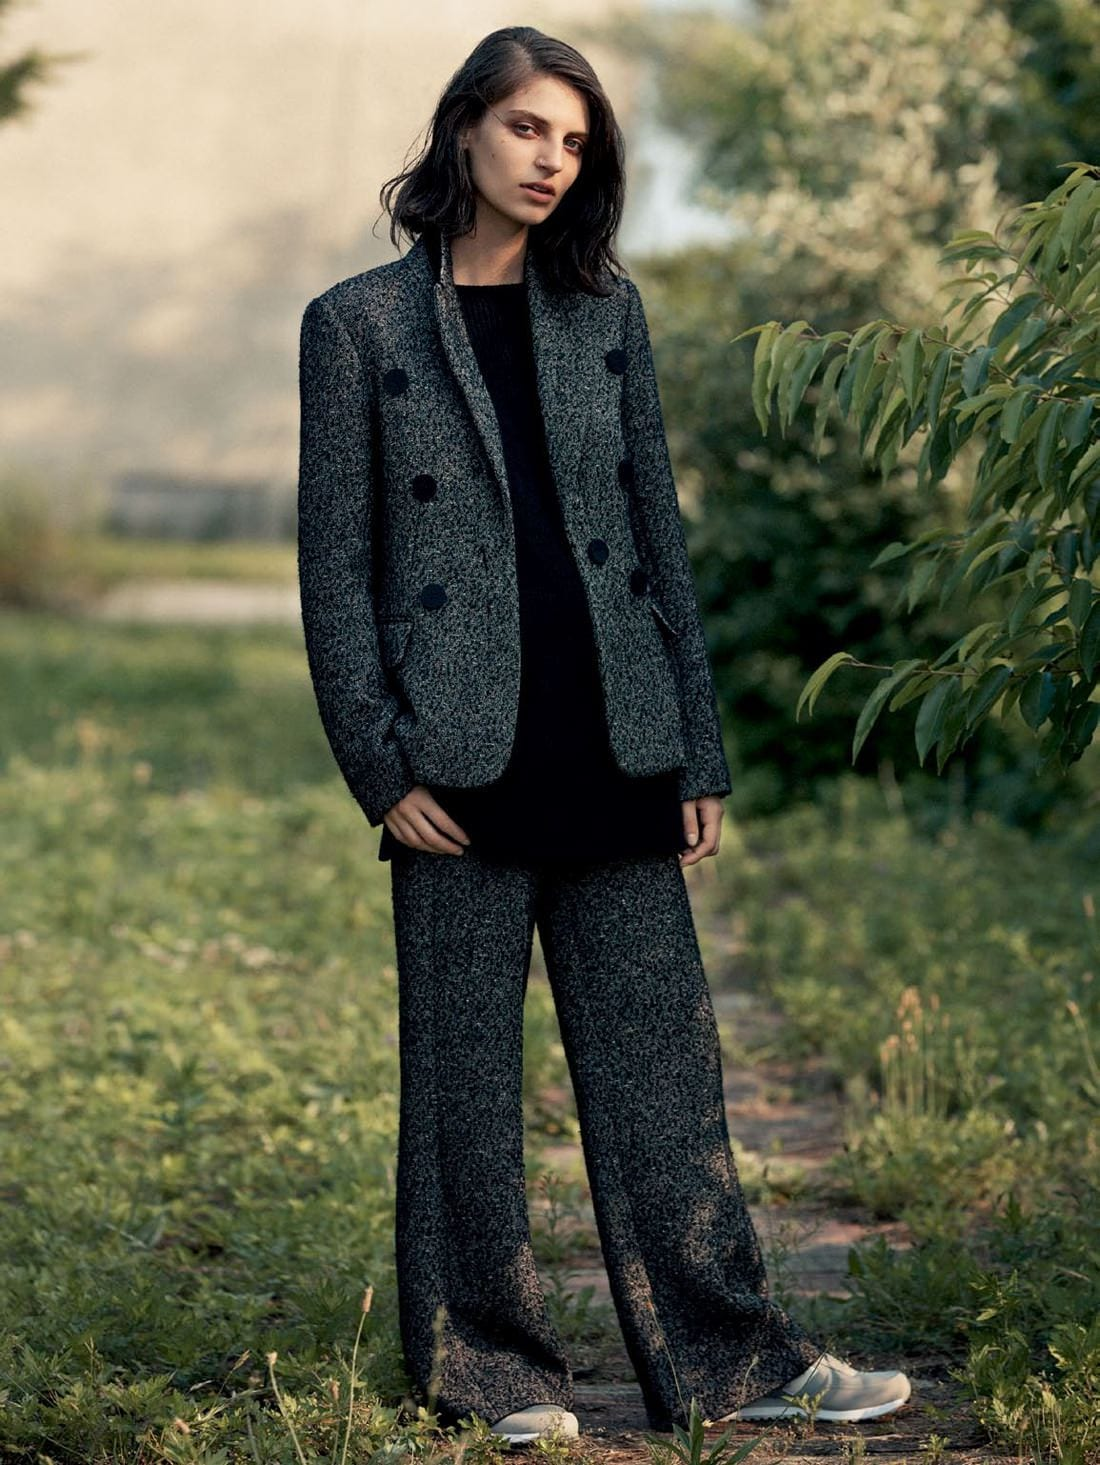 Style&Minimalism | Editorials | Vogue Russia | September, 2015 | Steffy Argelich & Ilana Kozlov